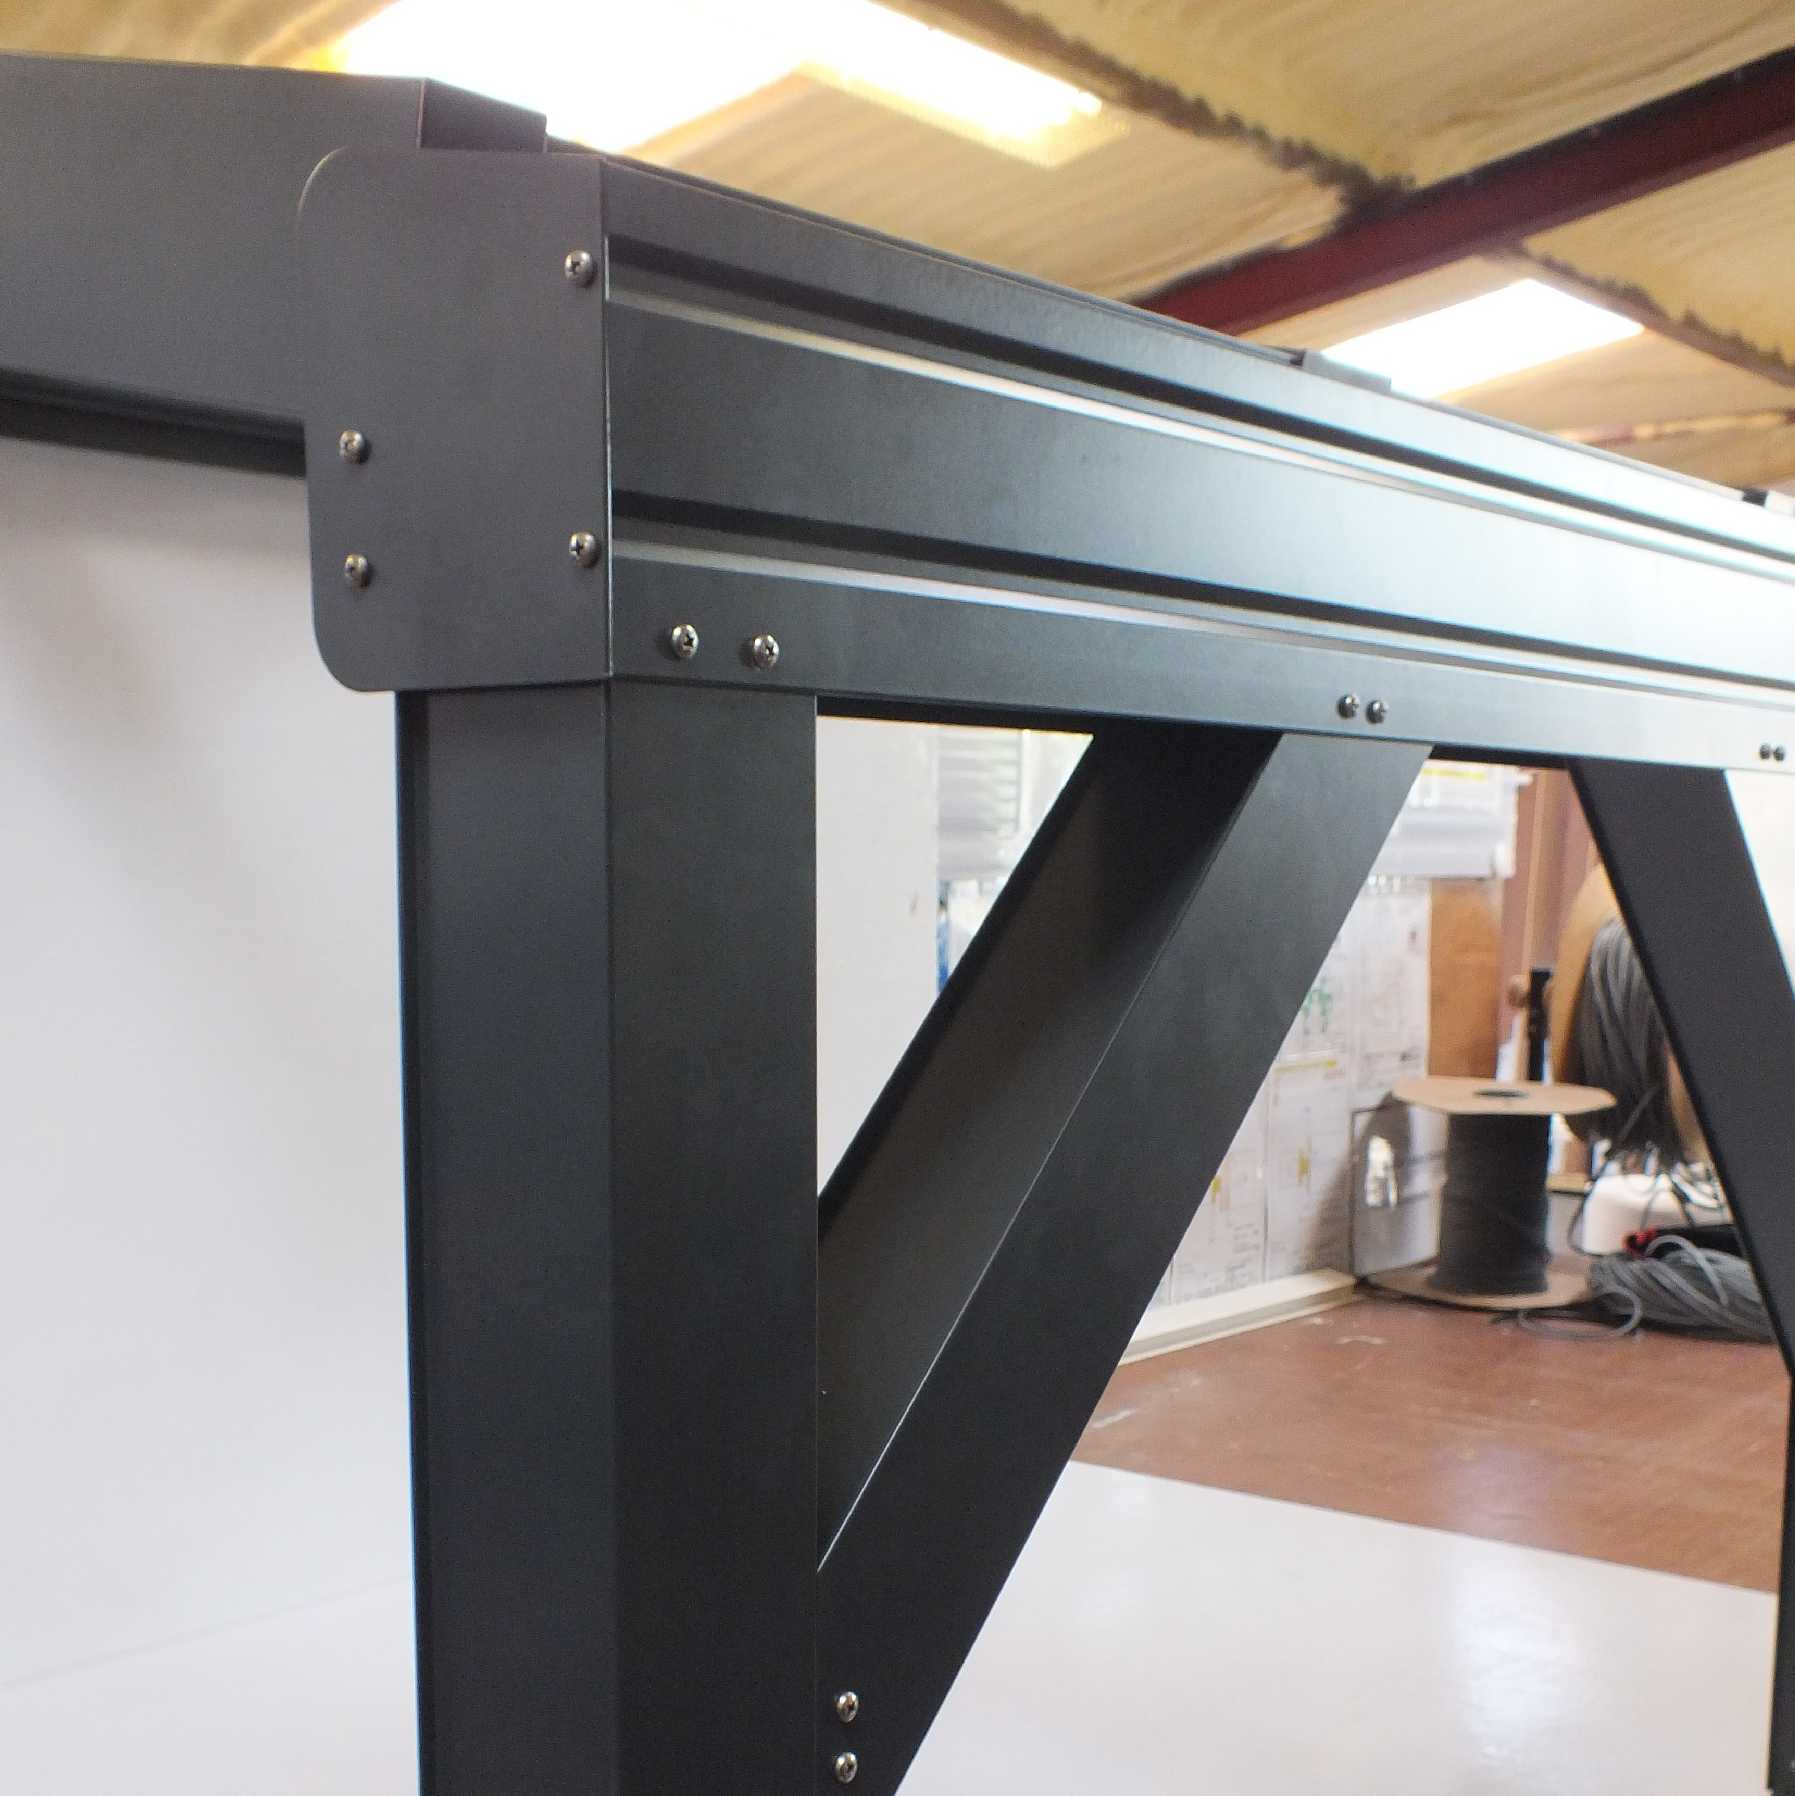 Omega Smart Lean-To Canopy, Anthracite Grey, UNGLAZED for 6mm Glazing - 2.8m (W) x 3.5m (P), (2) Supporting Posts from Omega Build